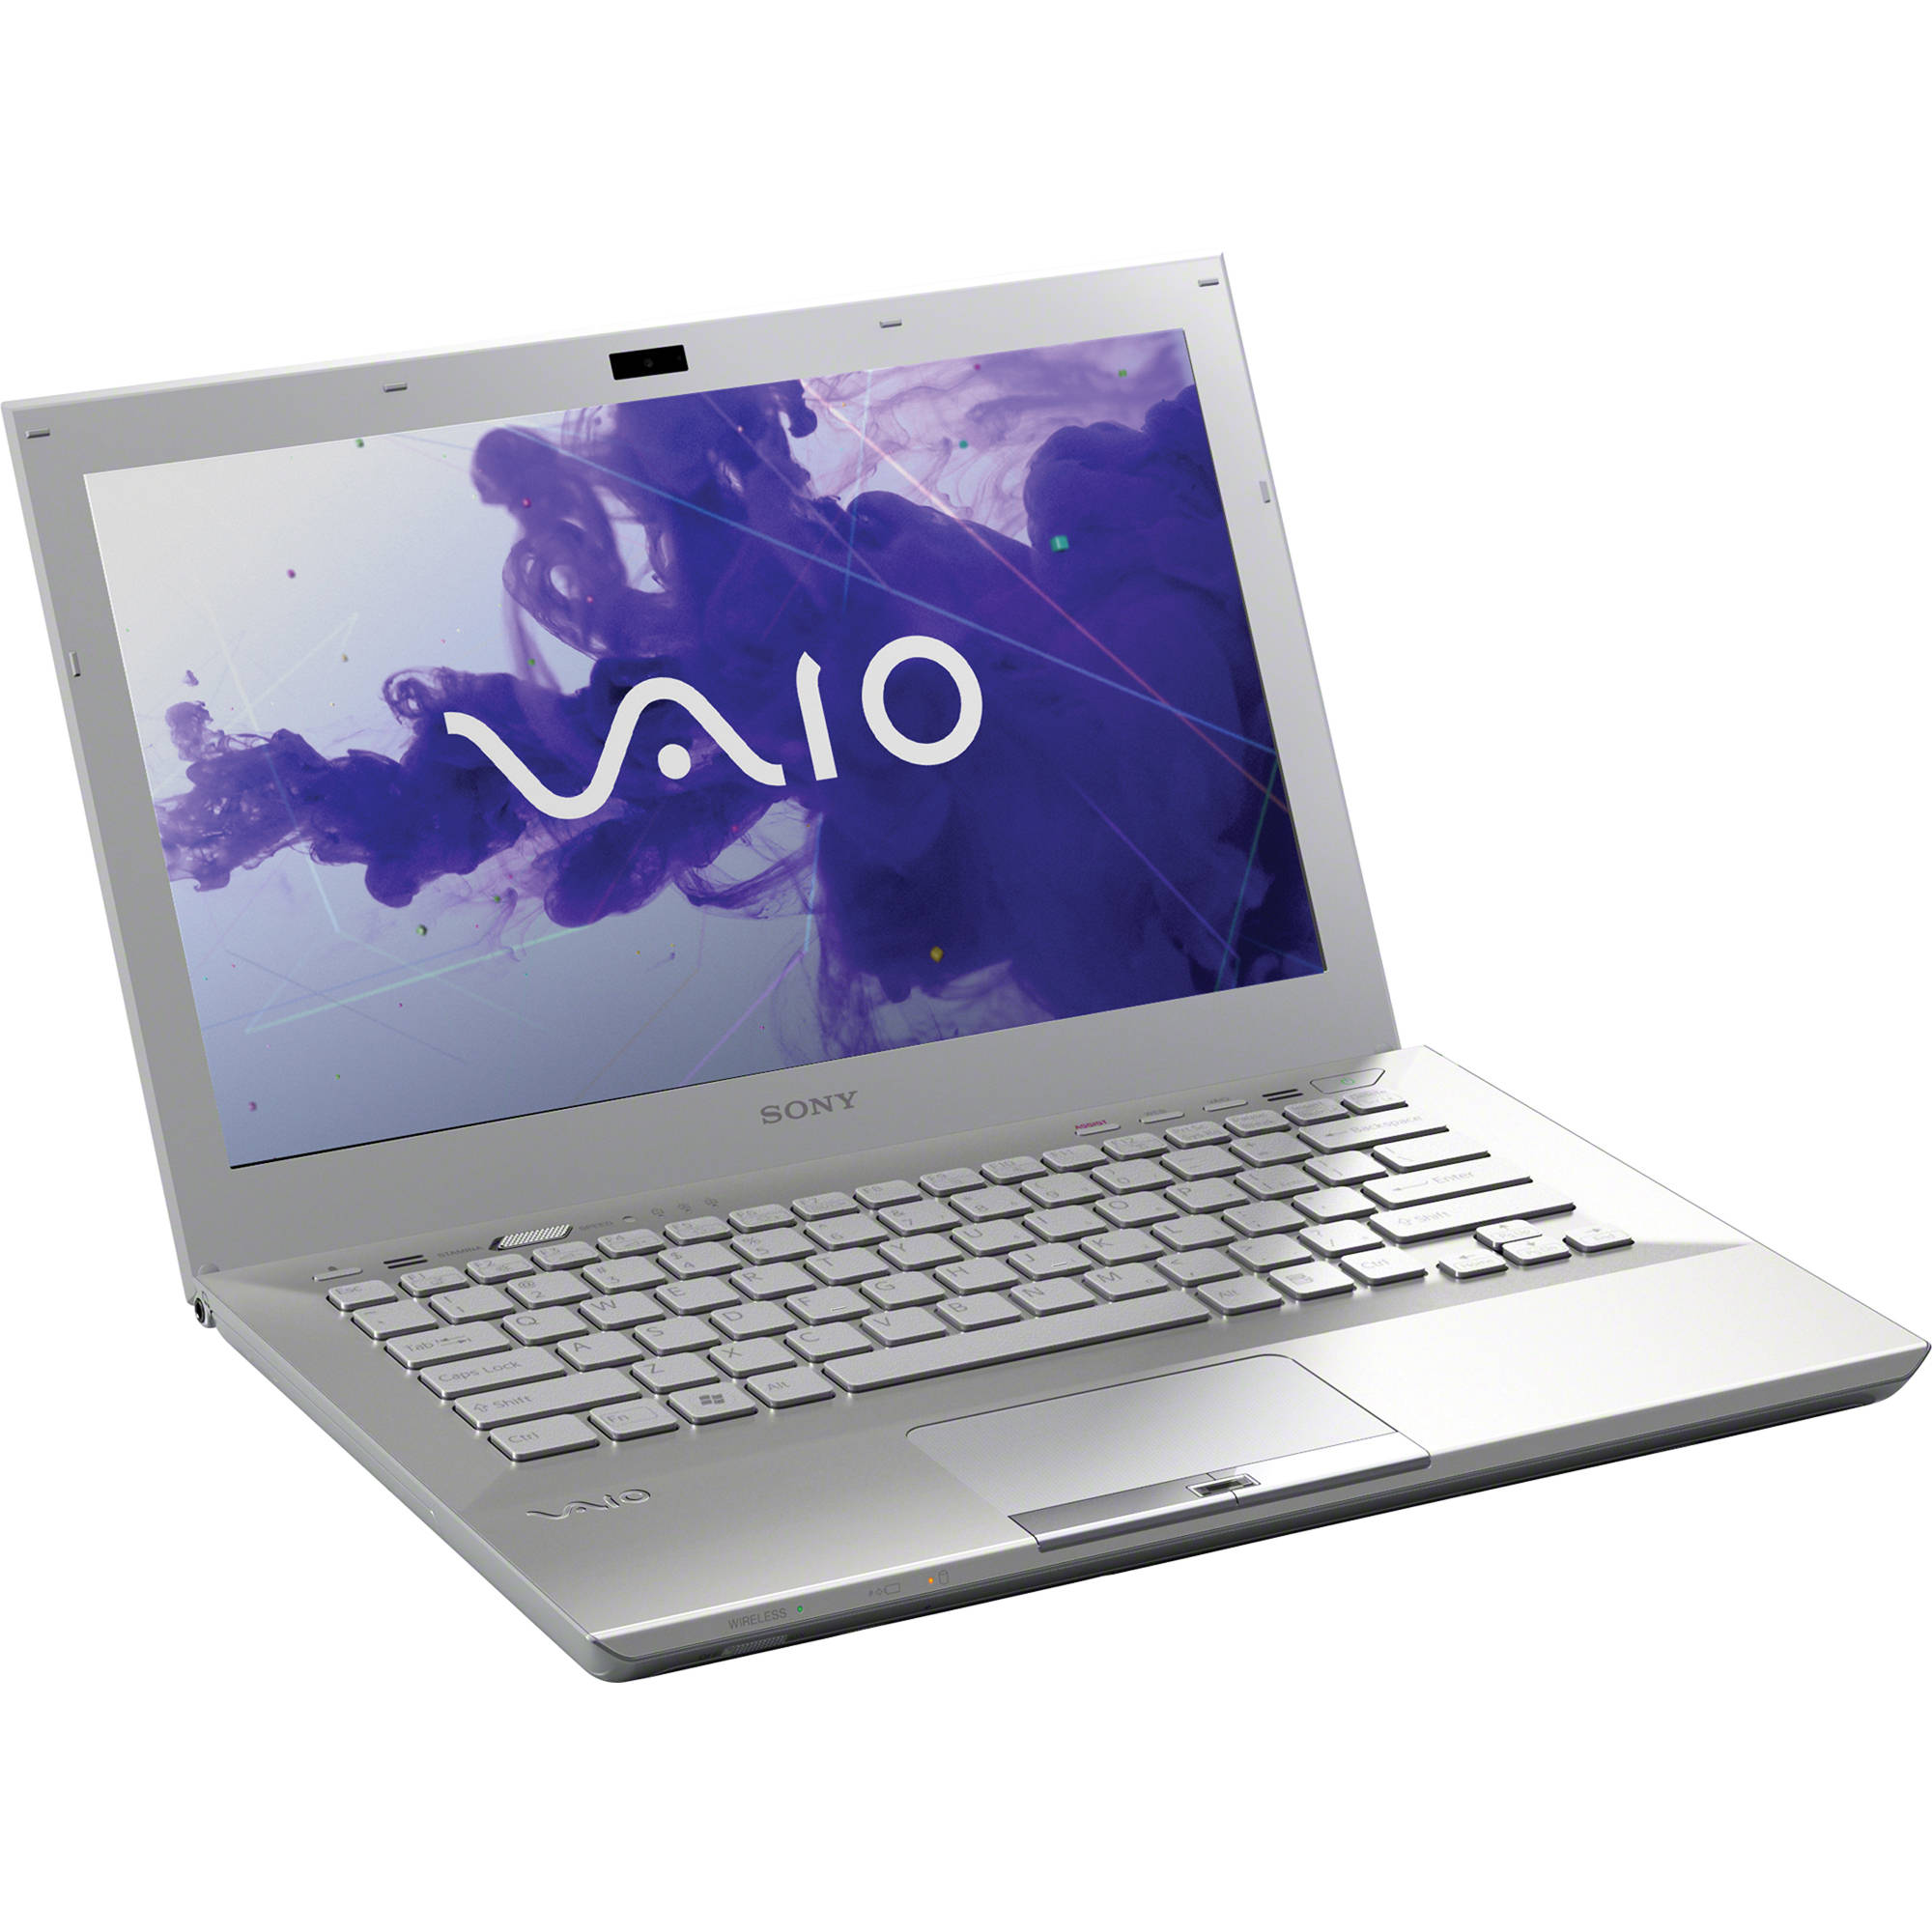 SONY VAIO VPCSA41FX INTEL WIDI DRIVER FOR WINDOWS 10